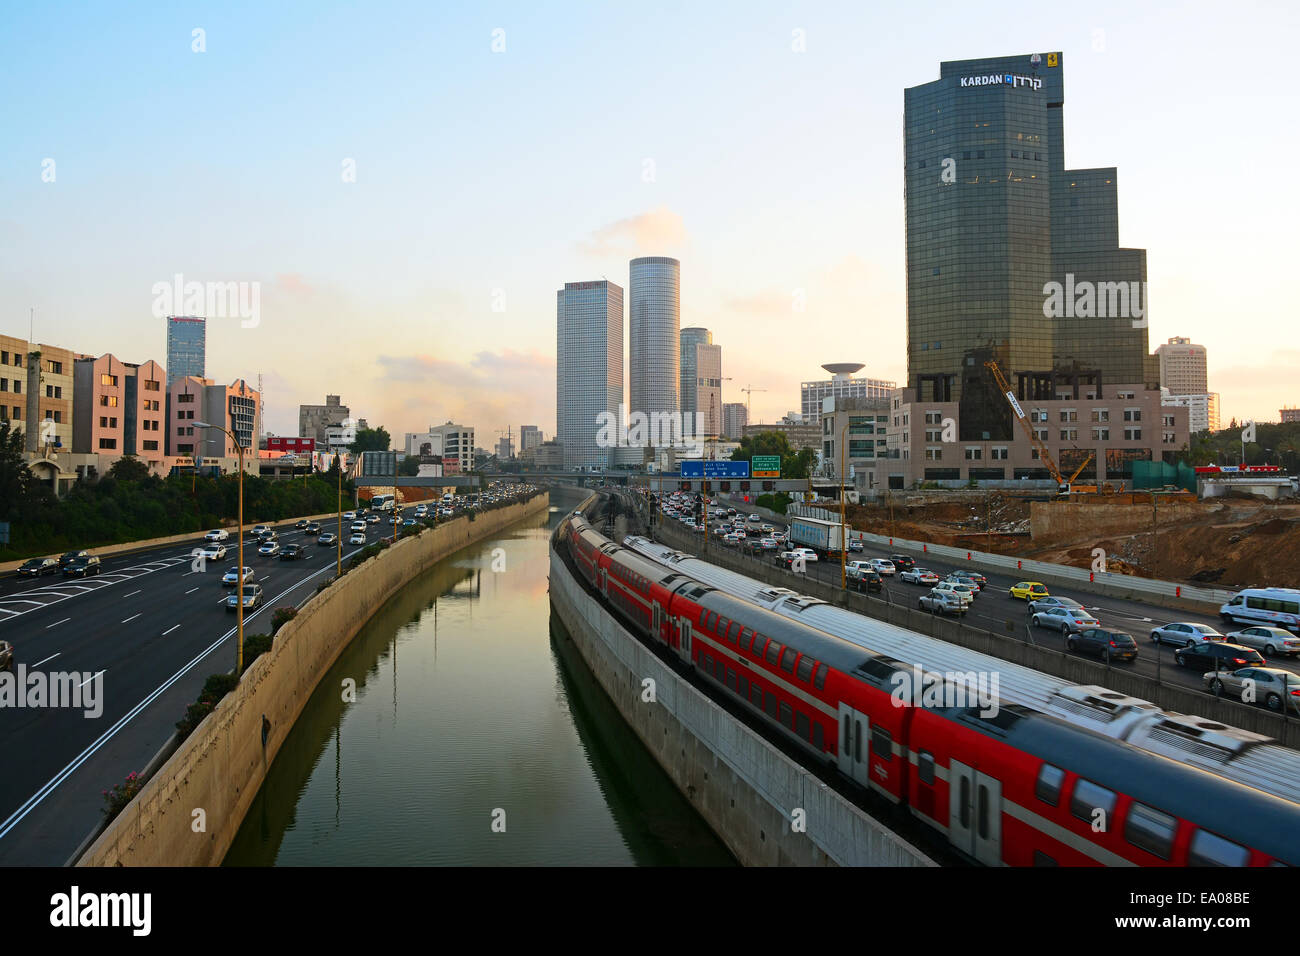 Tel Aviv, Ayalon Highway and water way - Stock Image